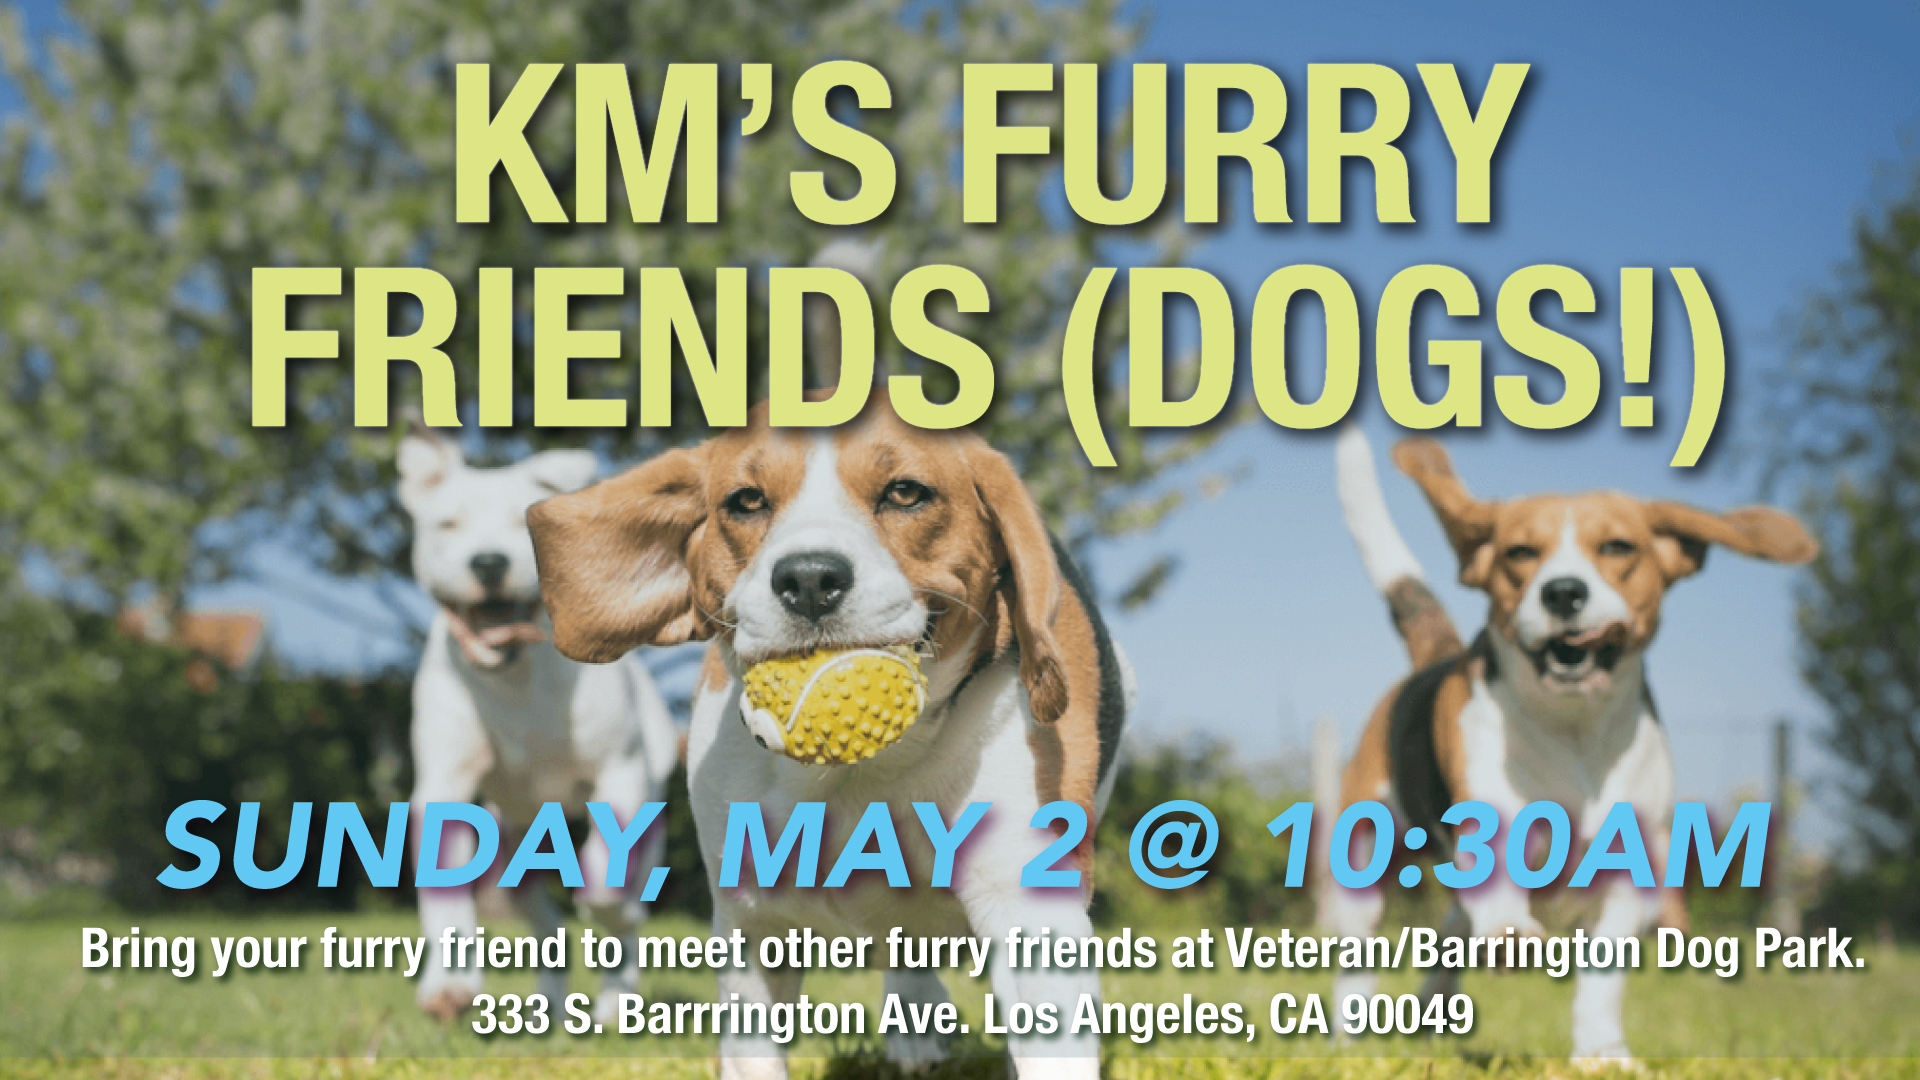 KM's Furry Friends (Dogs!)